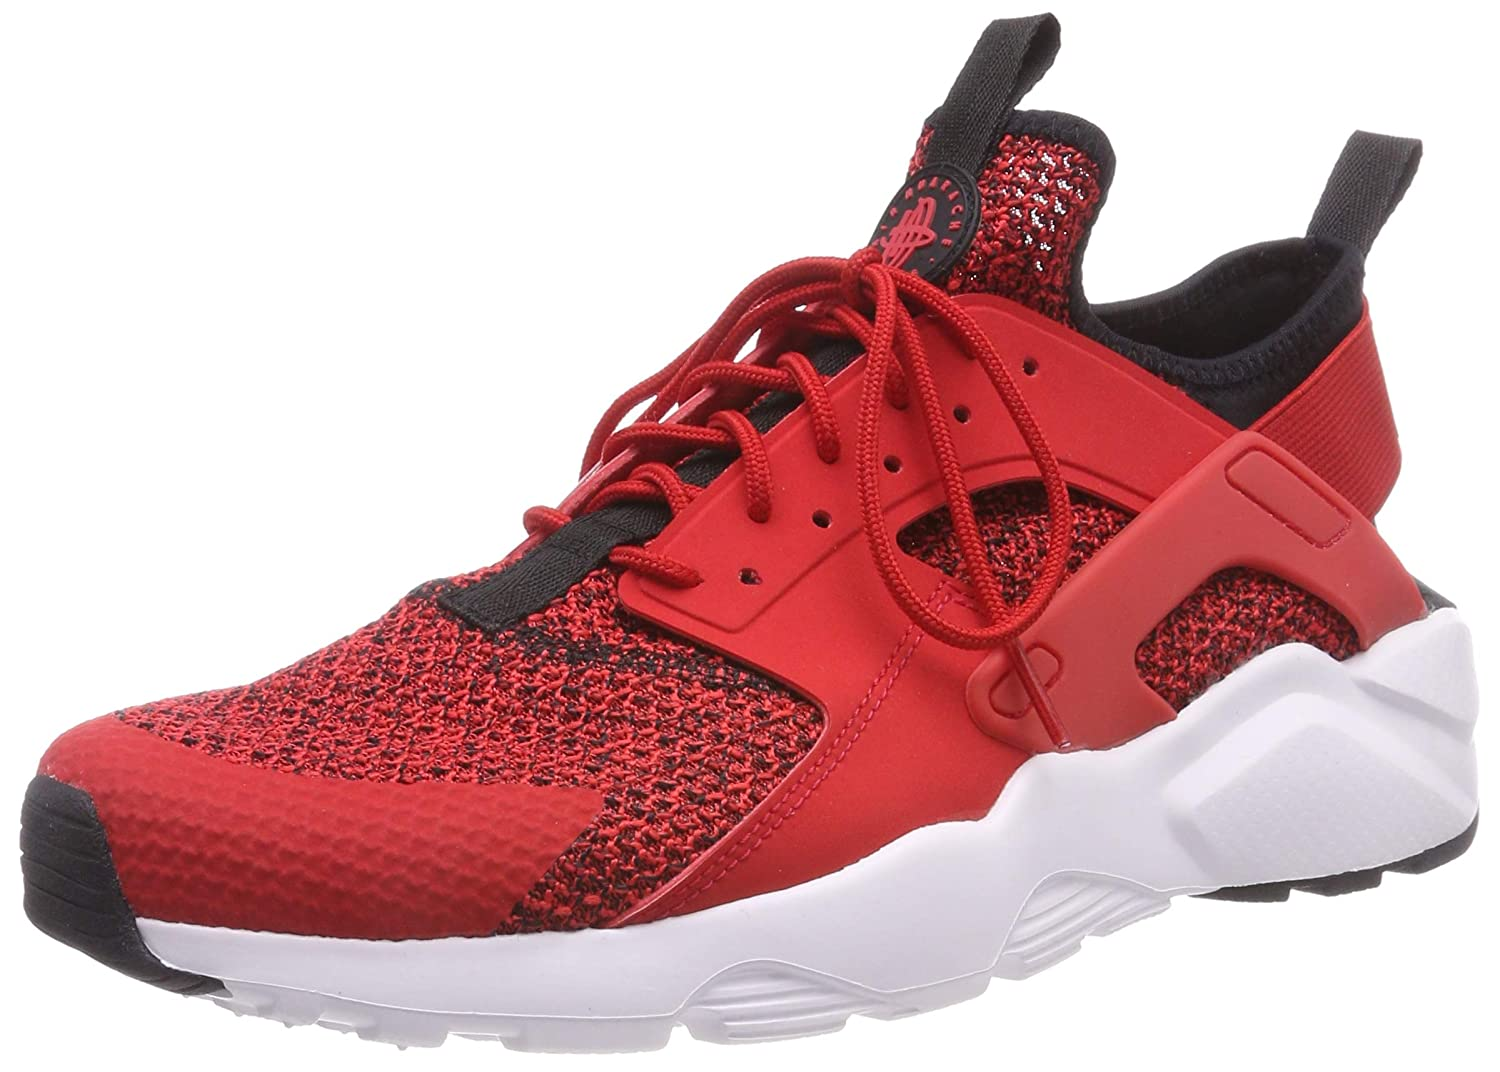 40e541a50d16 Nike Men s s Air Huarache Run Ultra Se Gymnastics Shoes  Amazon.co.uk  Shoes    Bags